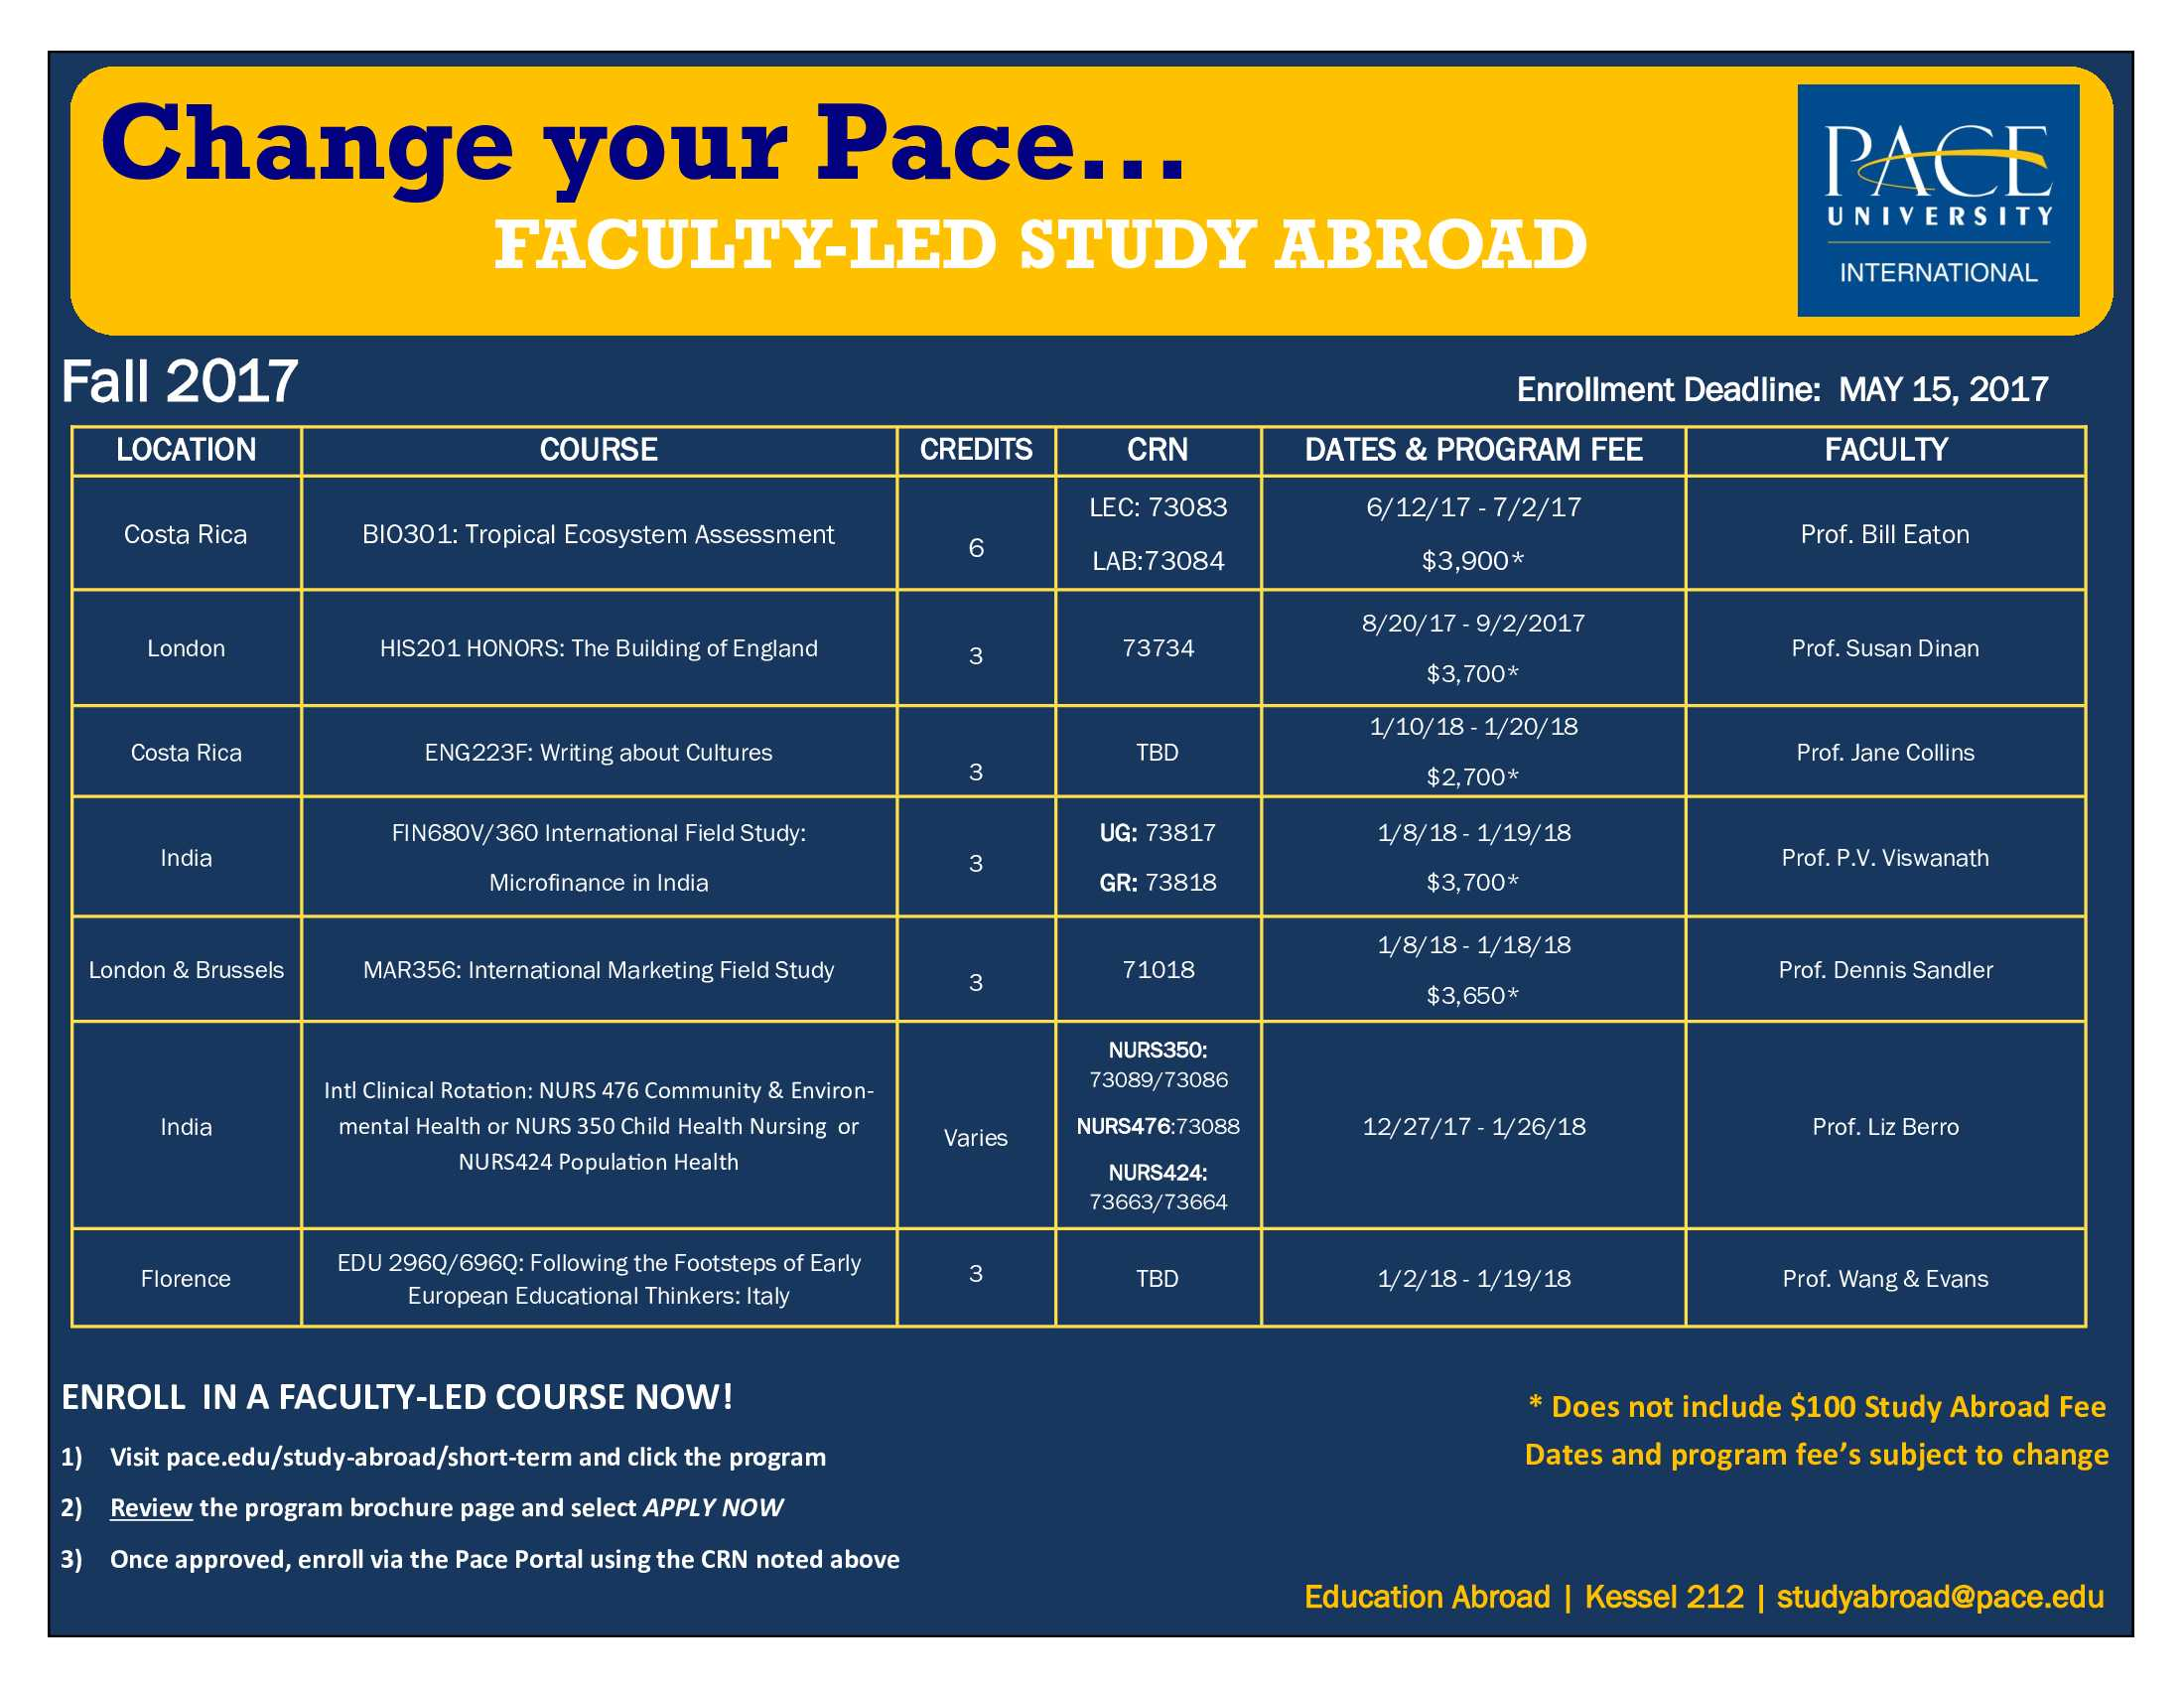 Information regarding Faculty-Led Study Abroad is as follows Create Your Own Tags: is #pacestudyabroad and Start date is April 12 2017 and End Date is July 01 2017 and File is Browse and Affiliation is Department and Group Name is Education Abroad and Name of Ad/Event is Faculty-Led Study Abroad and File Name is Overall-Chart-BLUE-Fall-2017-NYC_comp.jpg and Email is kbyrne3@pace.edu and Name is Kristina Gallagher and Panel is Main and